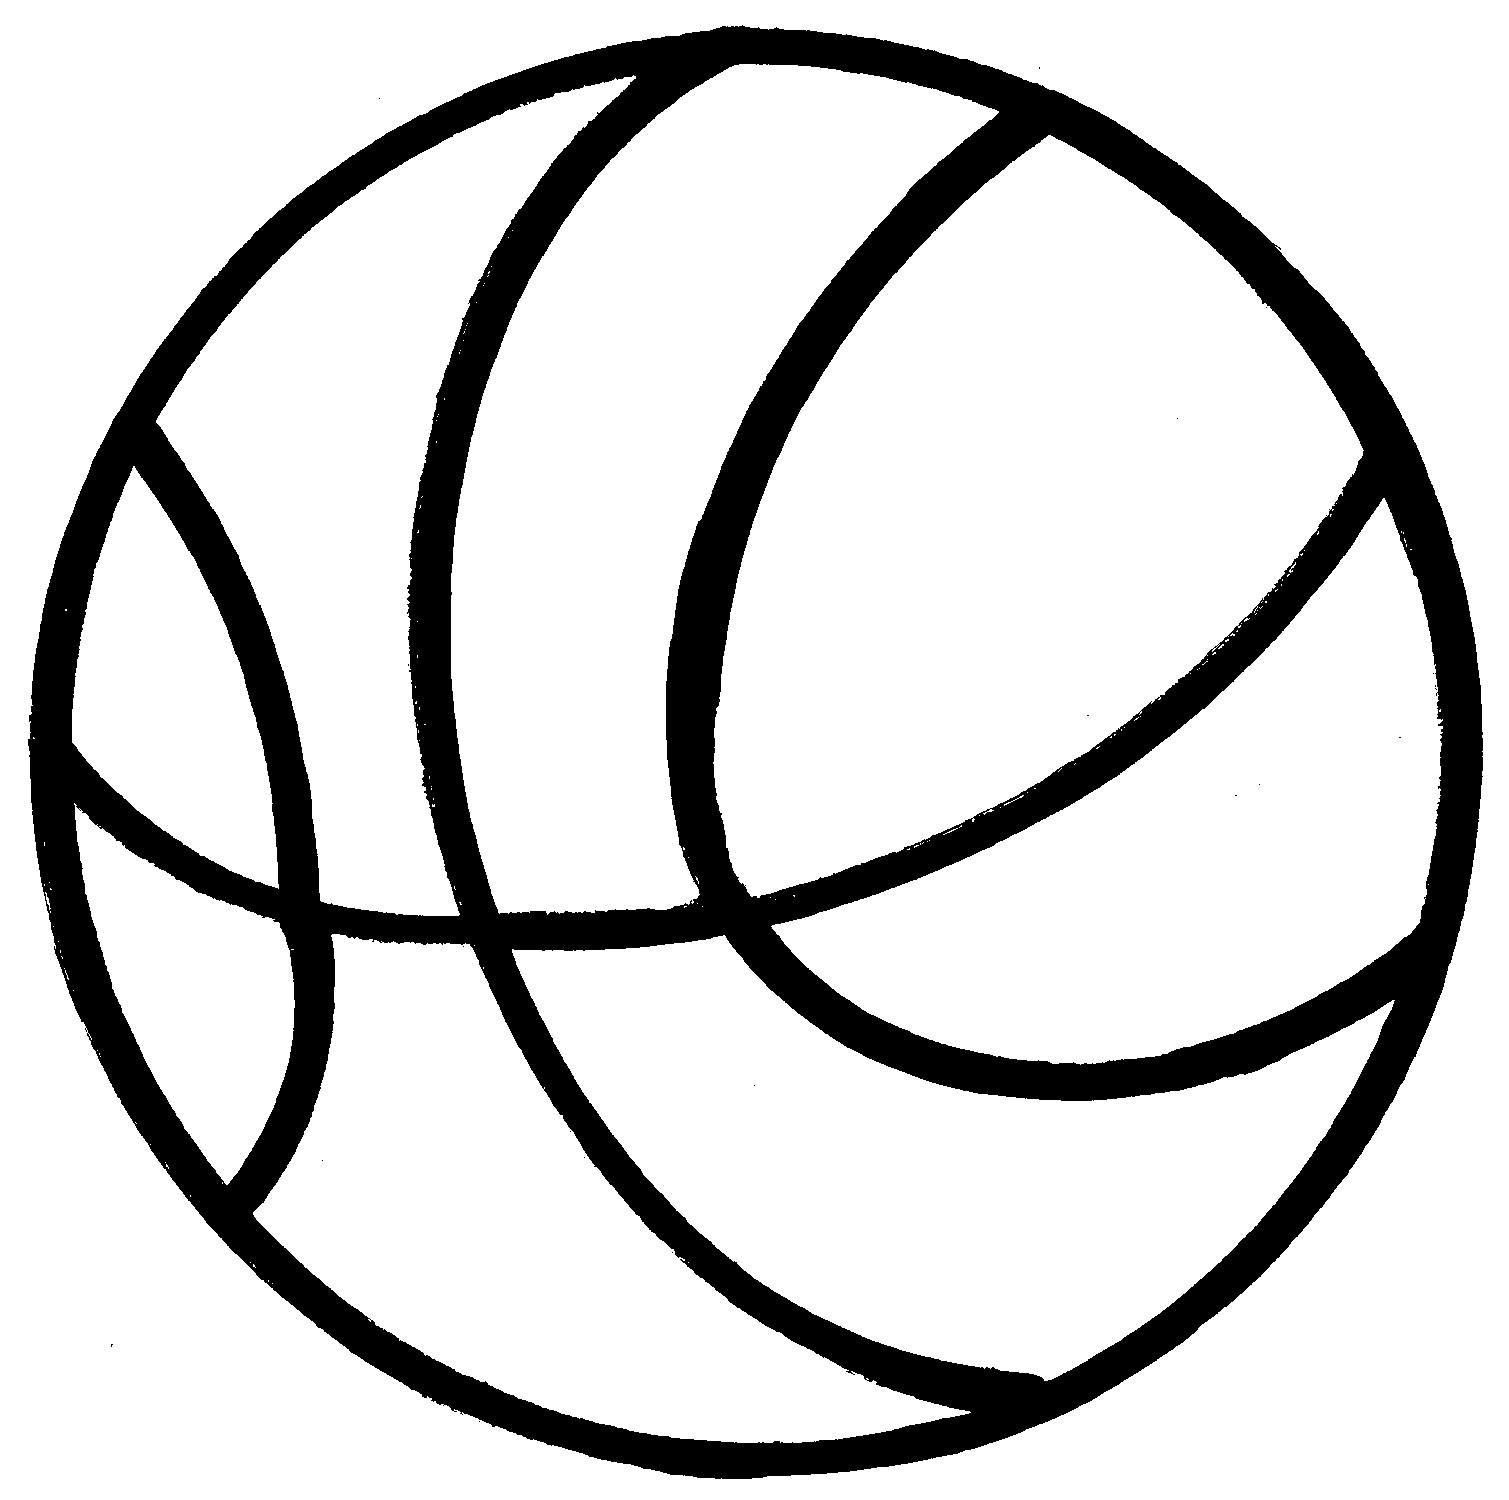 Ball Clipart Black And White | Clipart Panda - Free ...